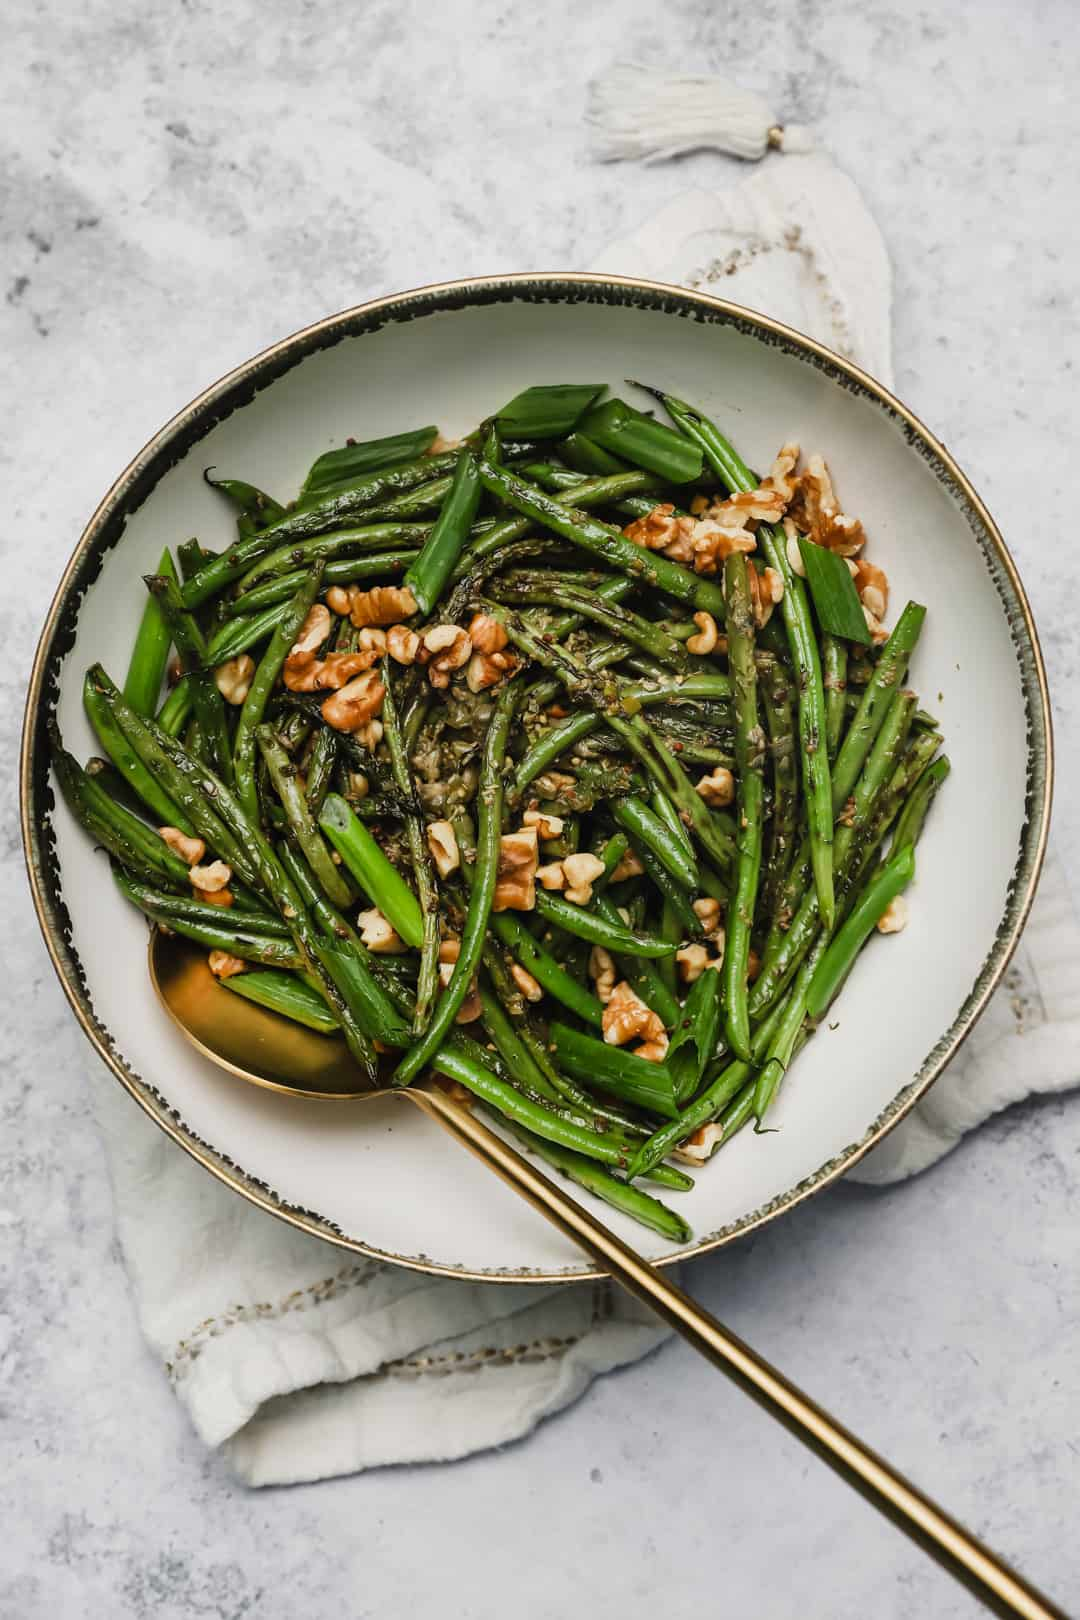 Sautéed French green beans with walnuts and capers in a bowl